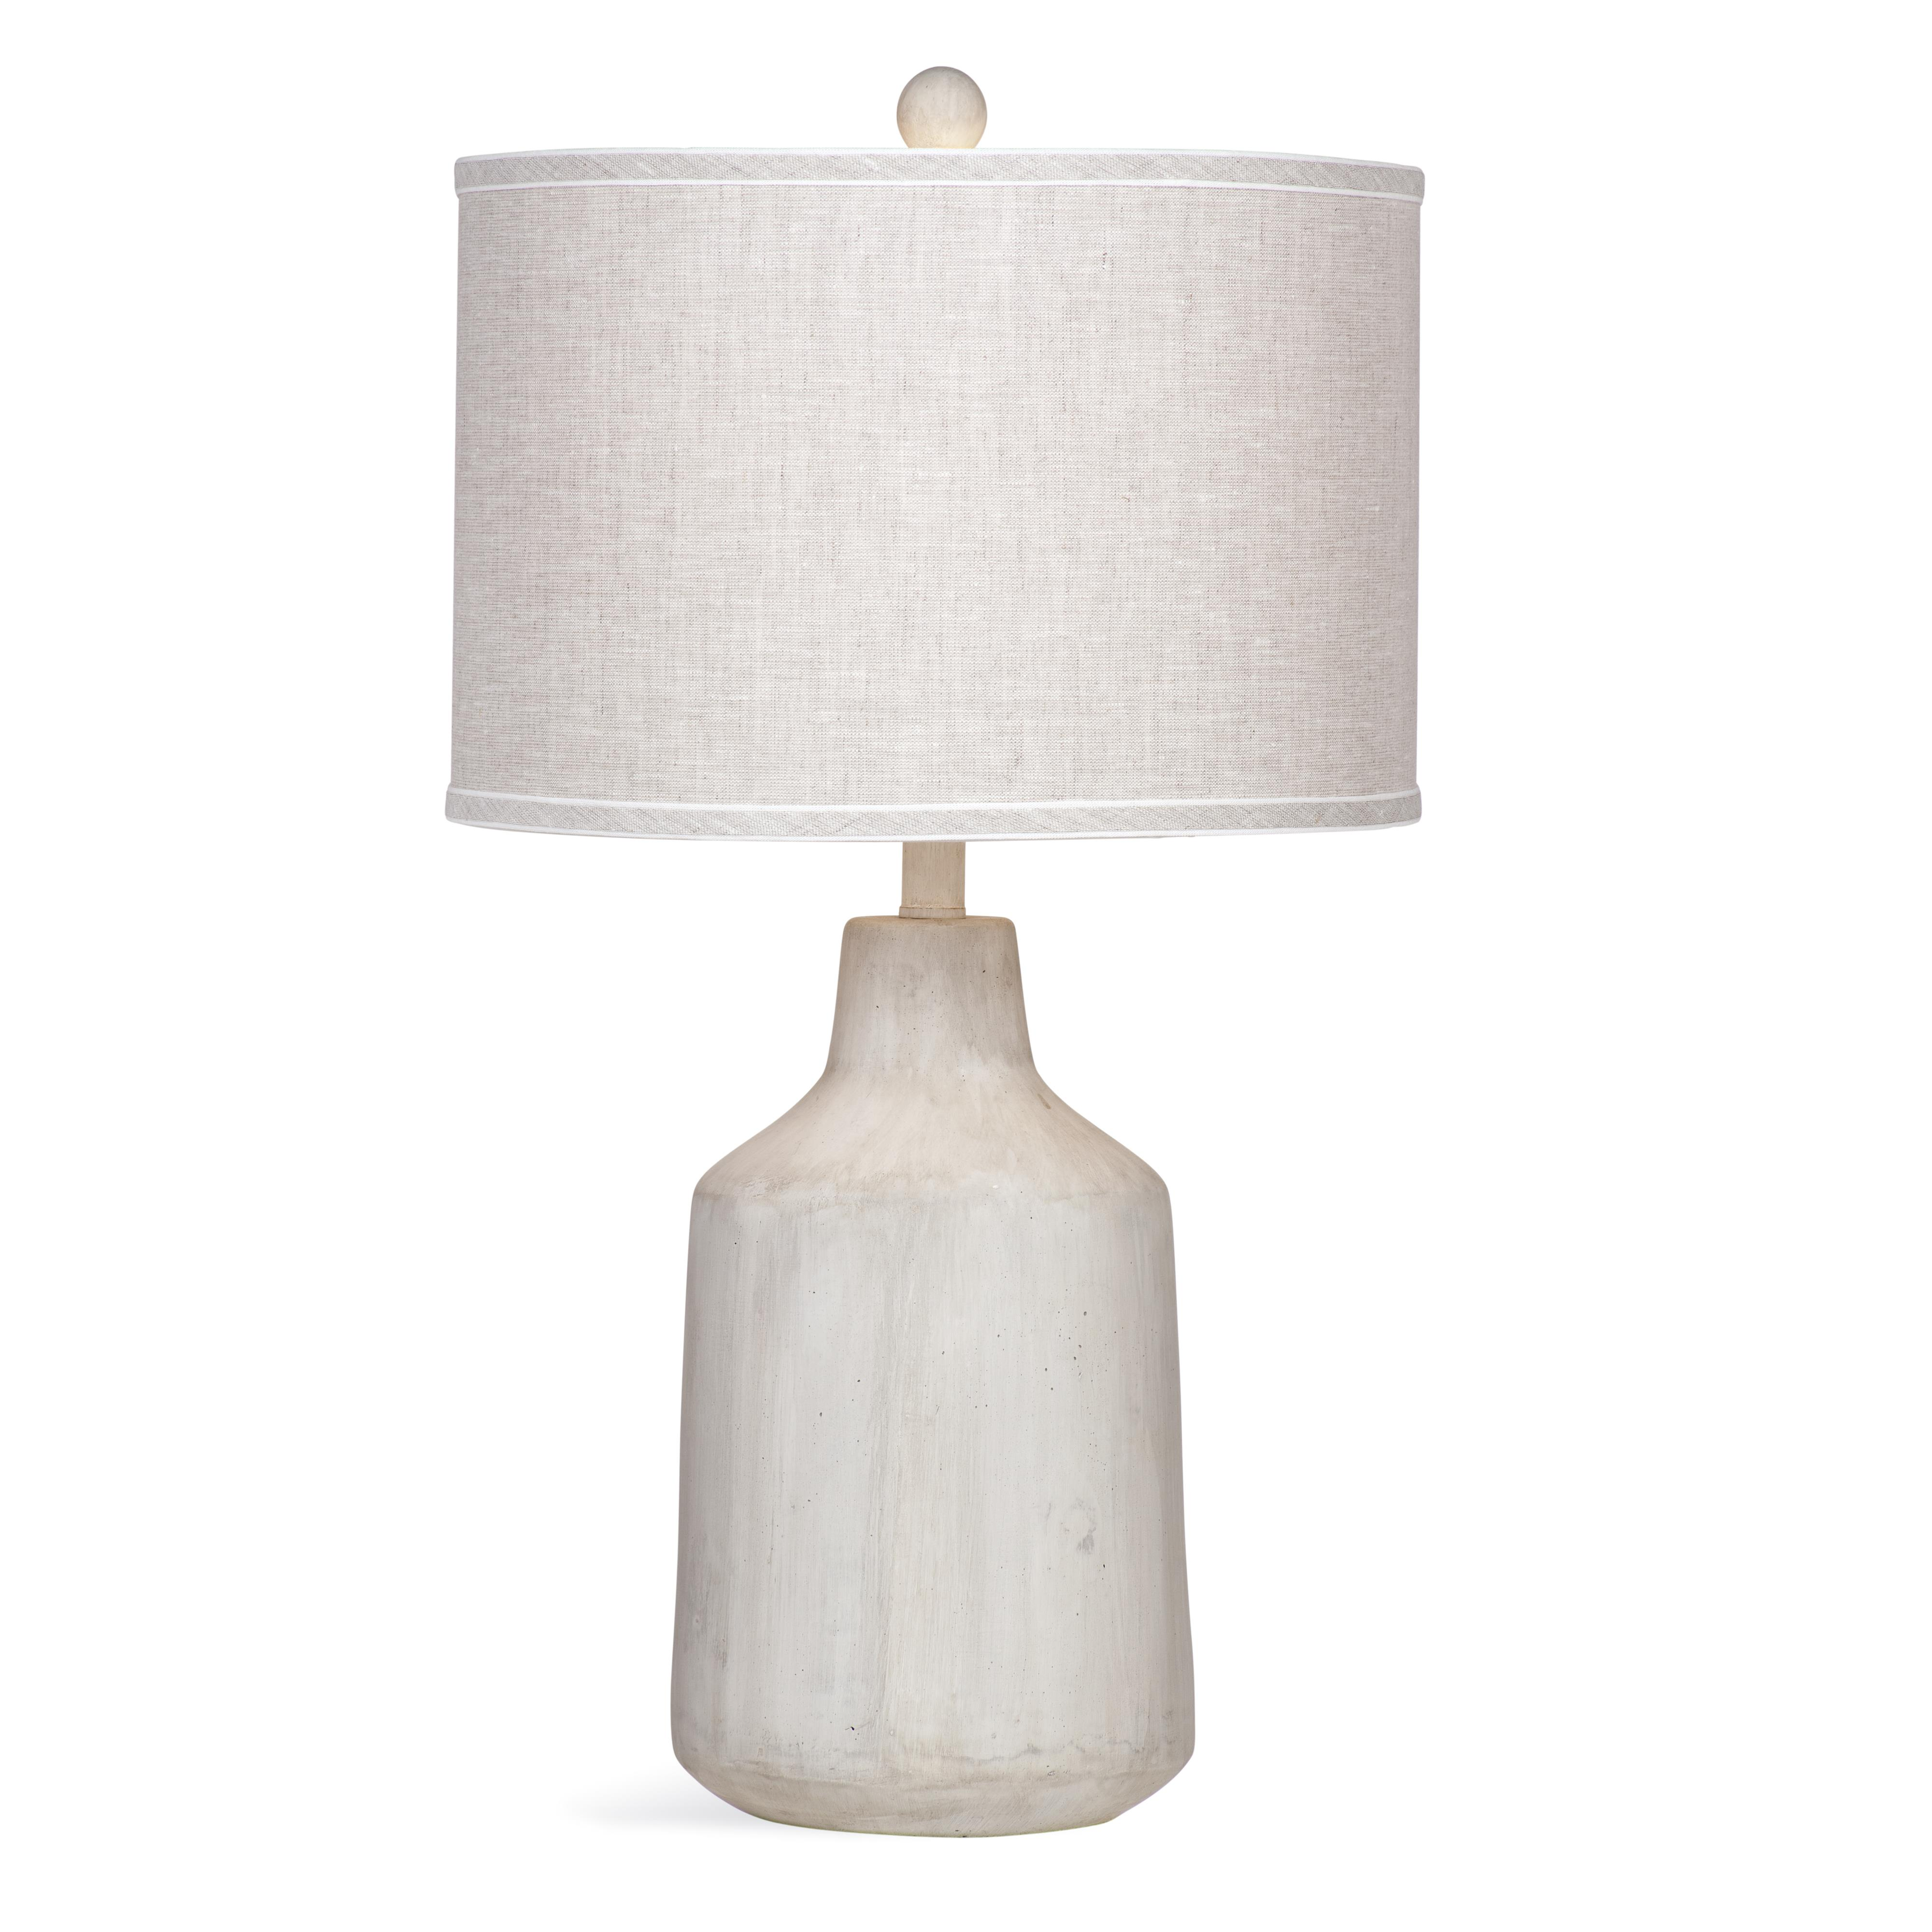 Belgian Luxe Dalton Table Lamp by Bassett Mirror at Alison Craig Home Furnishings